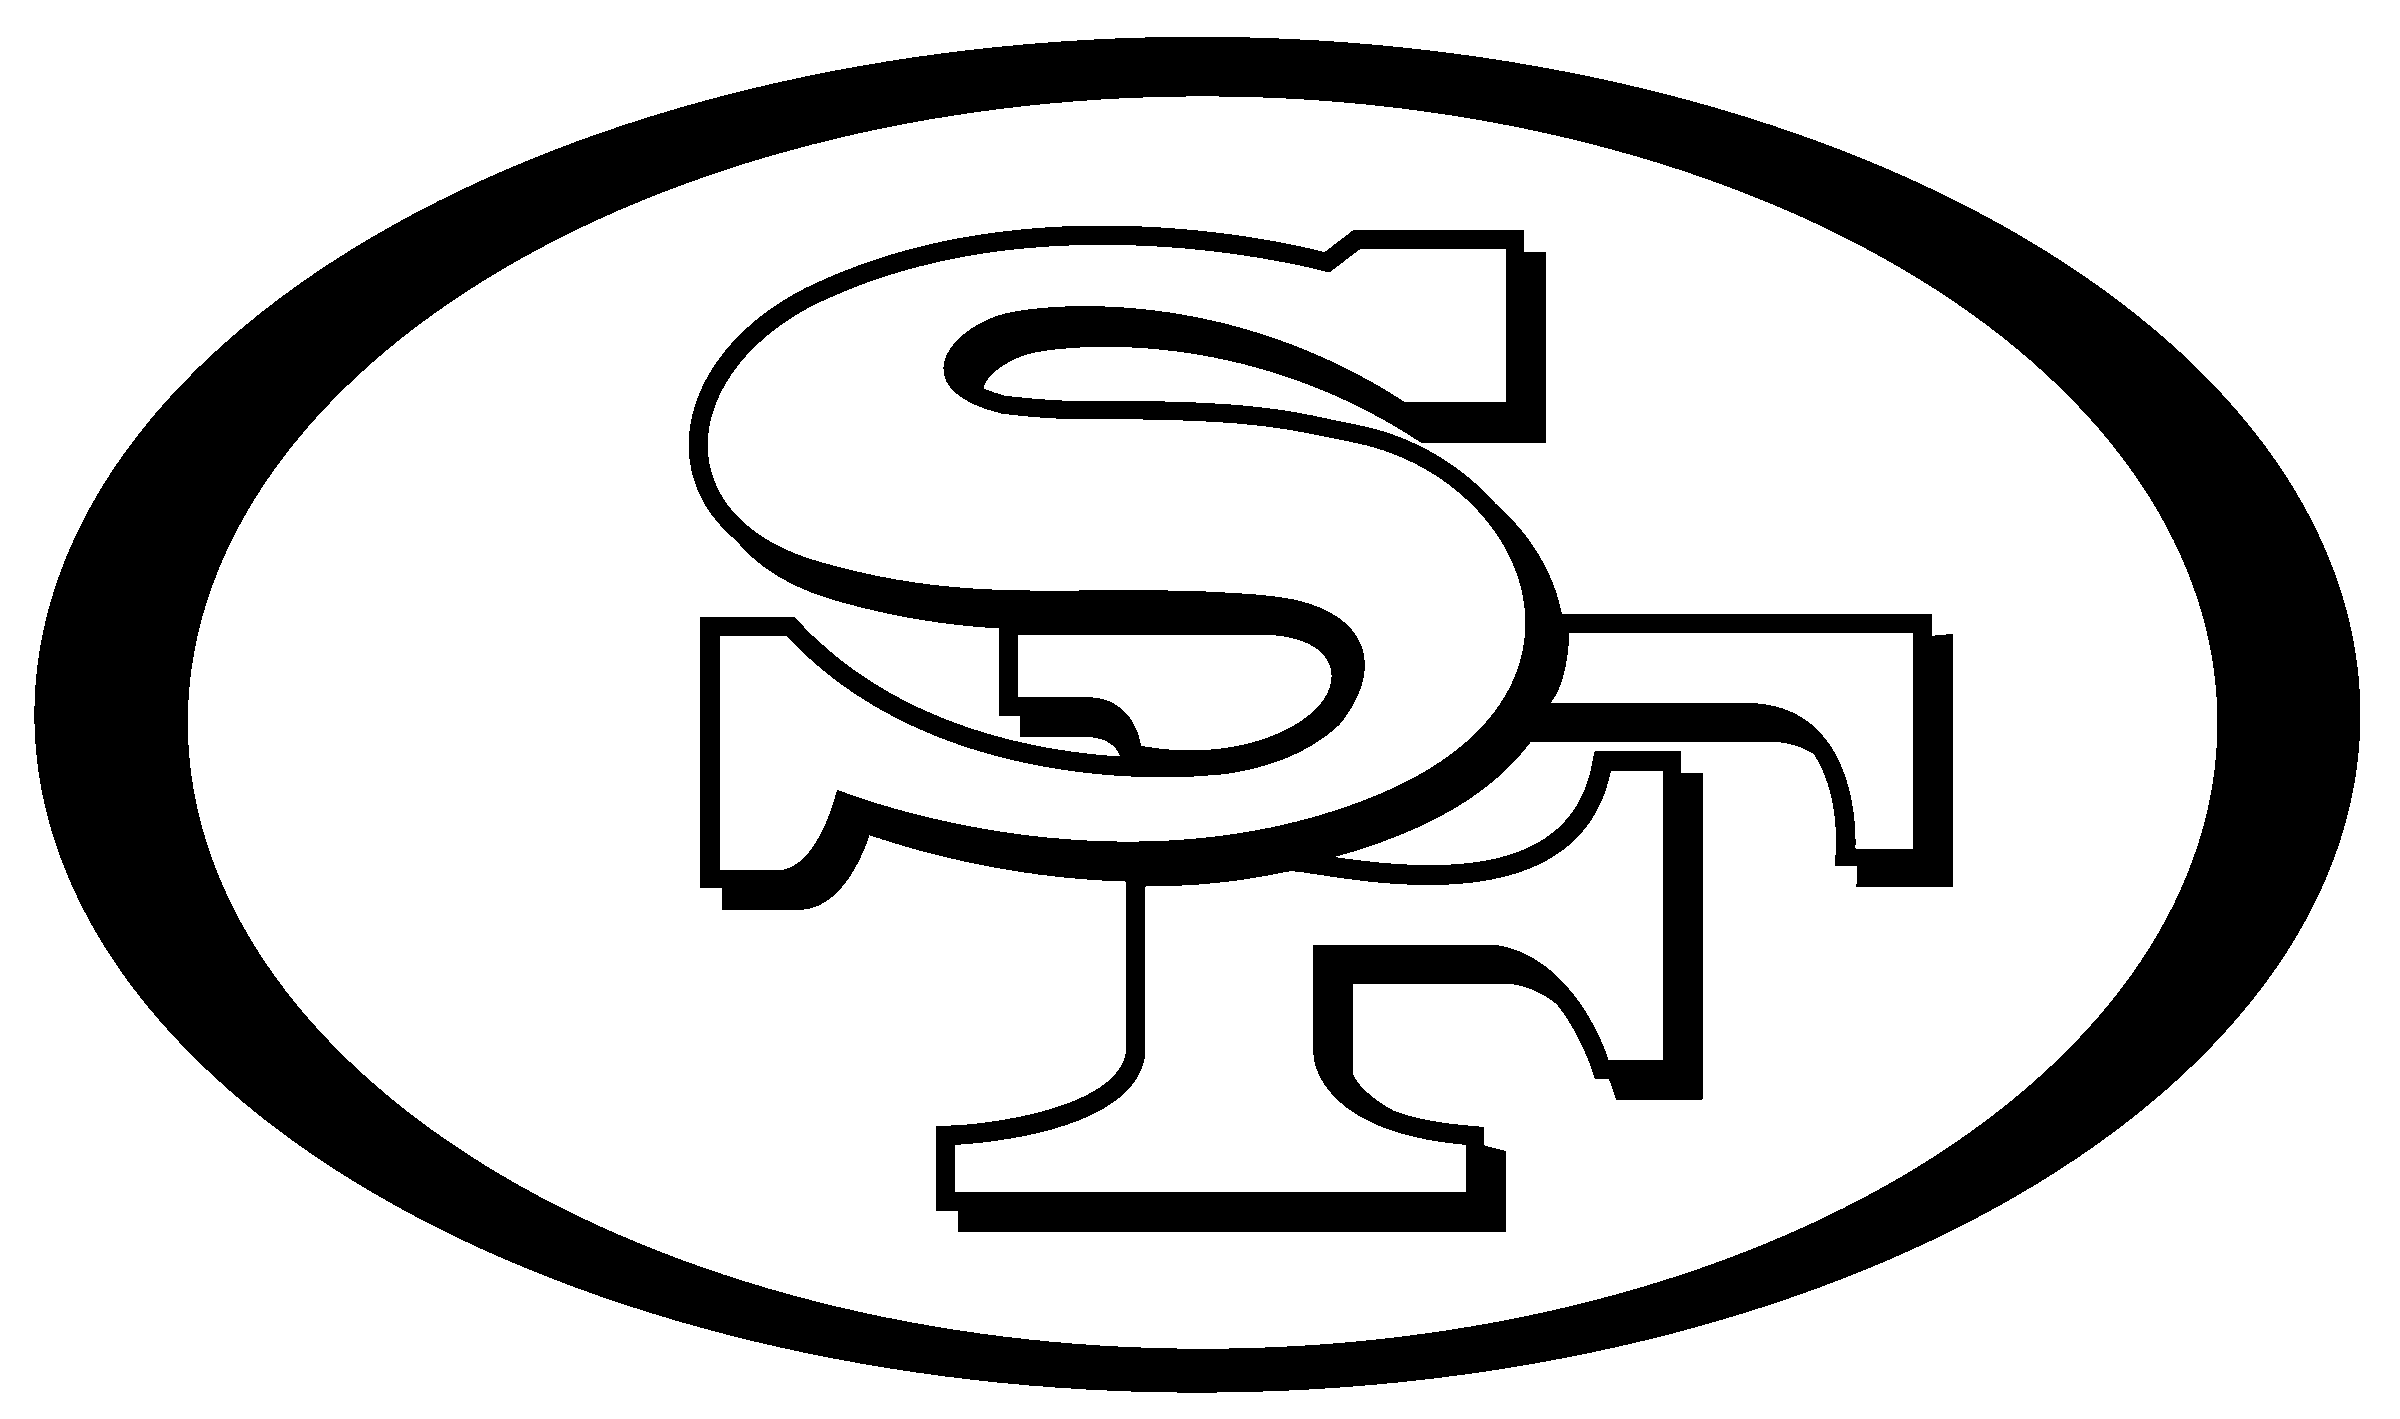 49ers clip art clipart images gallery for free download.